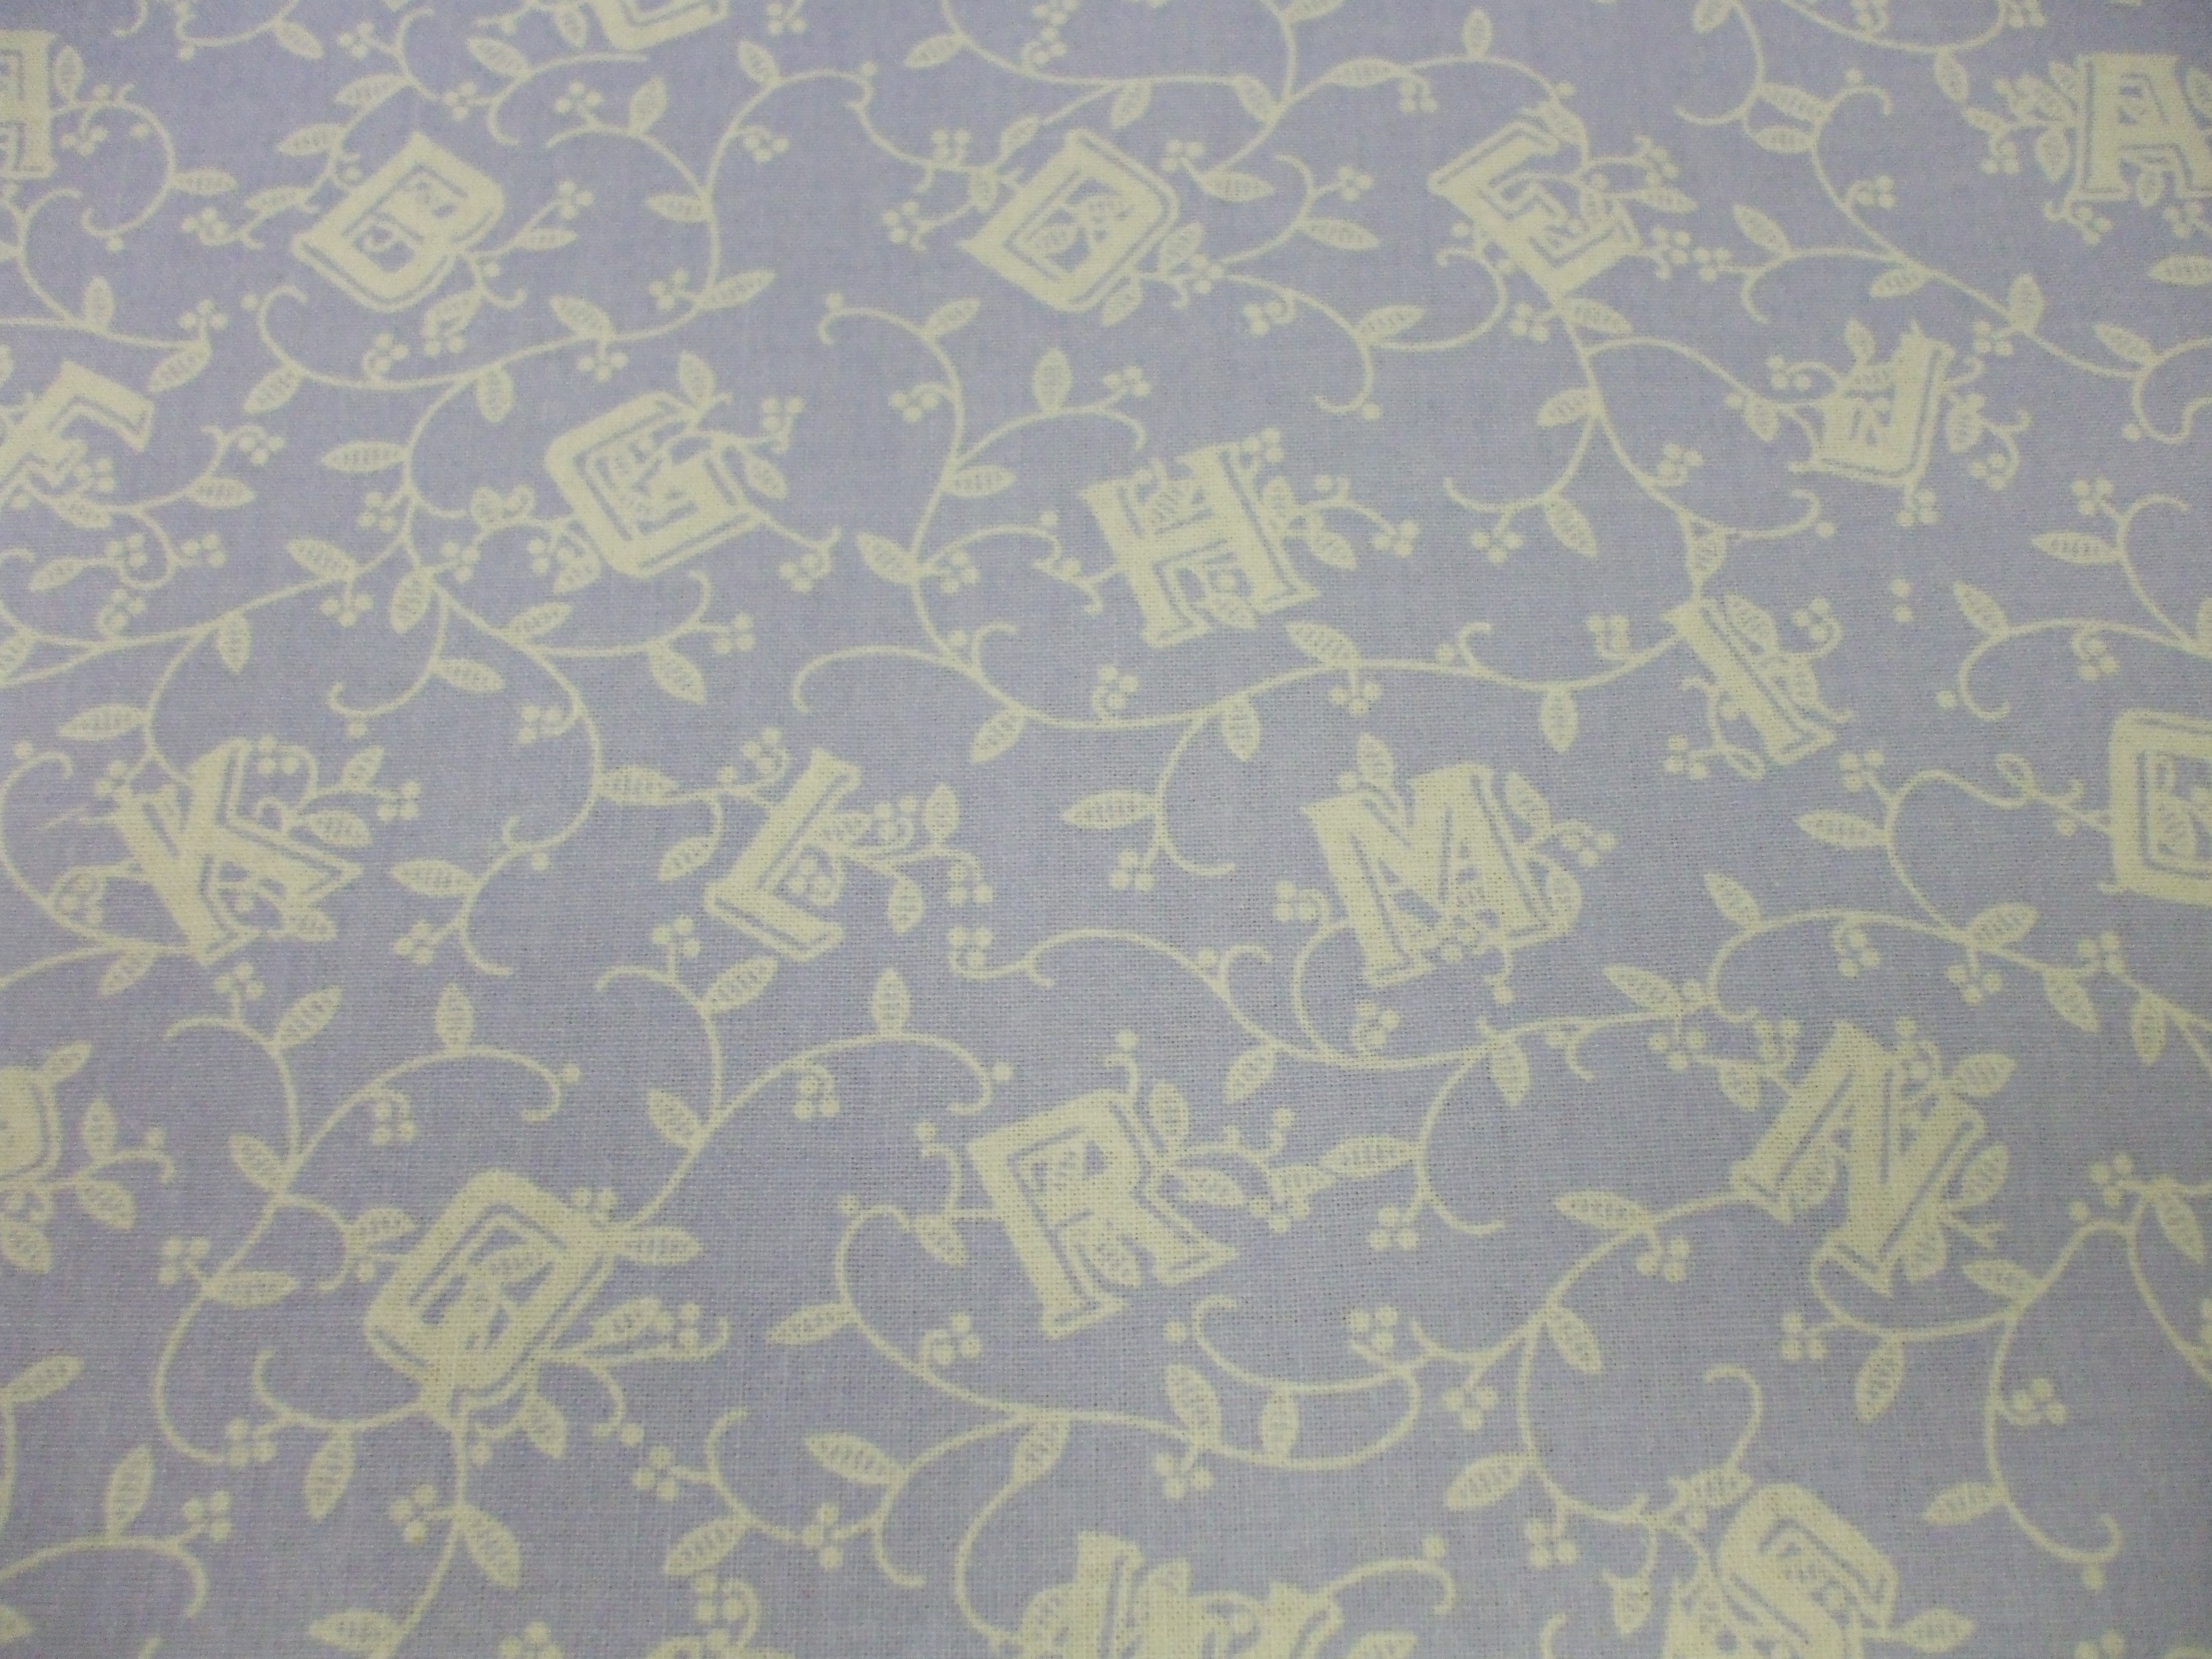 Laura Ashley ABC Blocks lavender